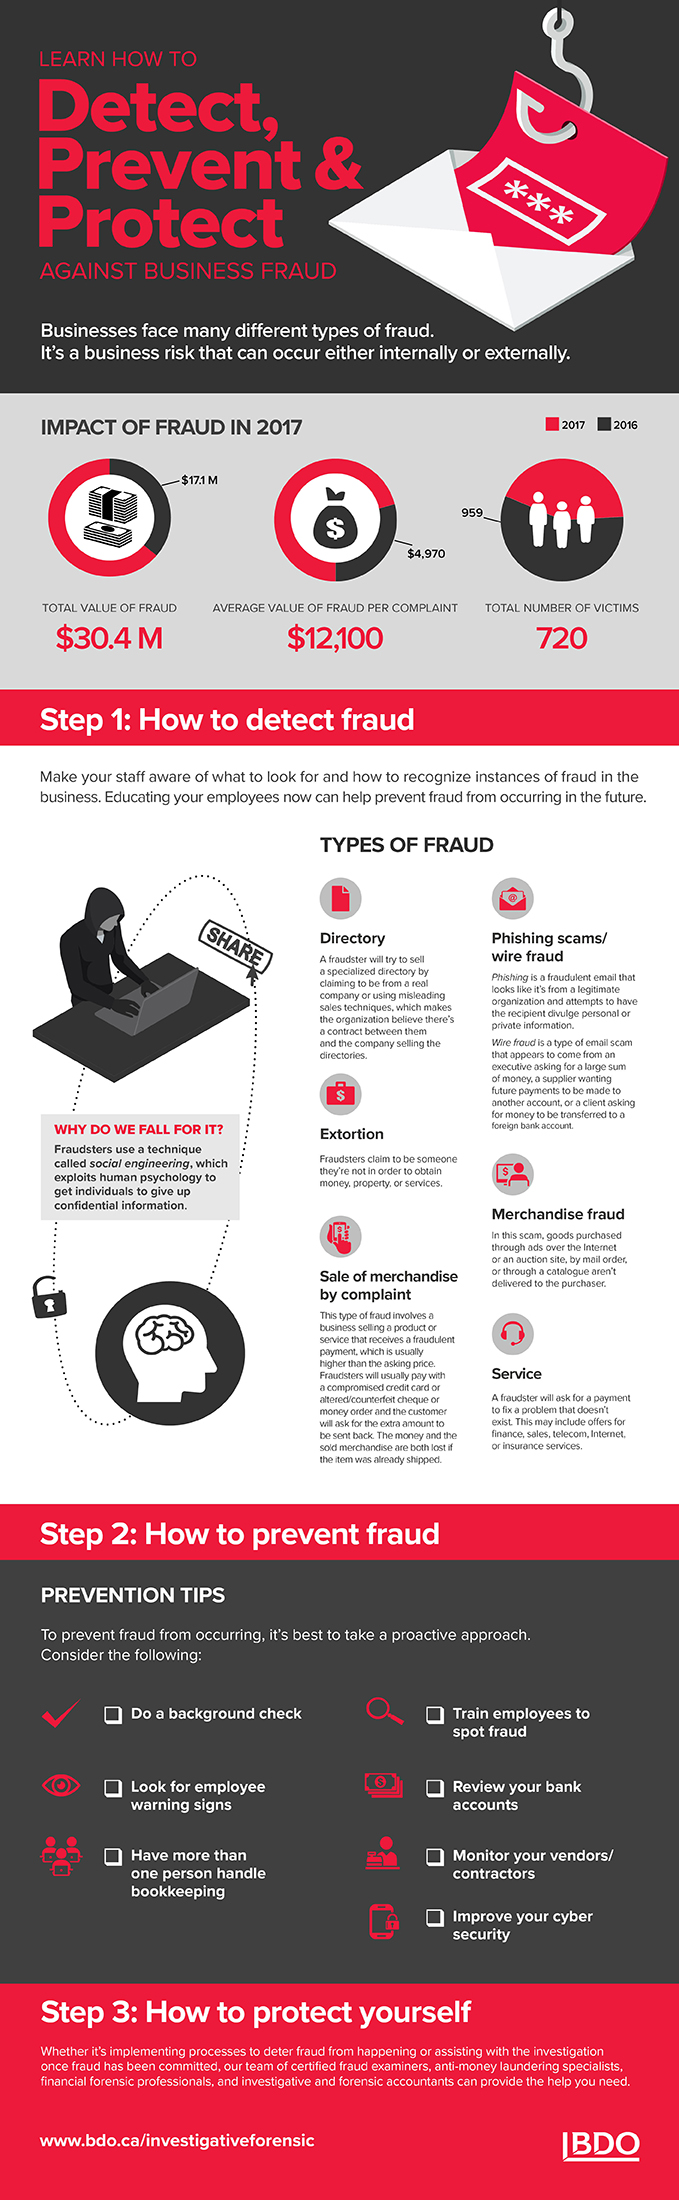 Business_Fraud_Trends_in_Canada_2017_Infographic_679x2200_Proxima-(1).jpg